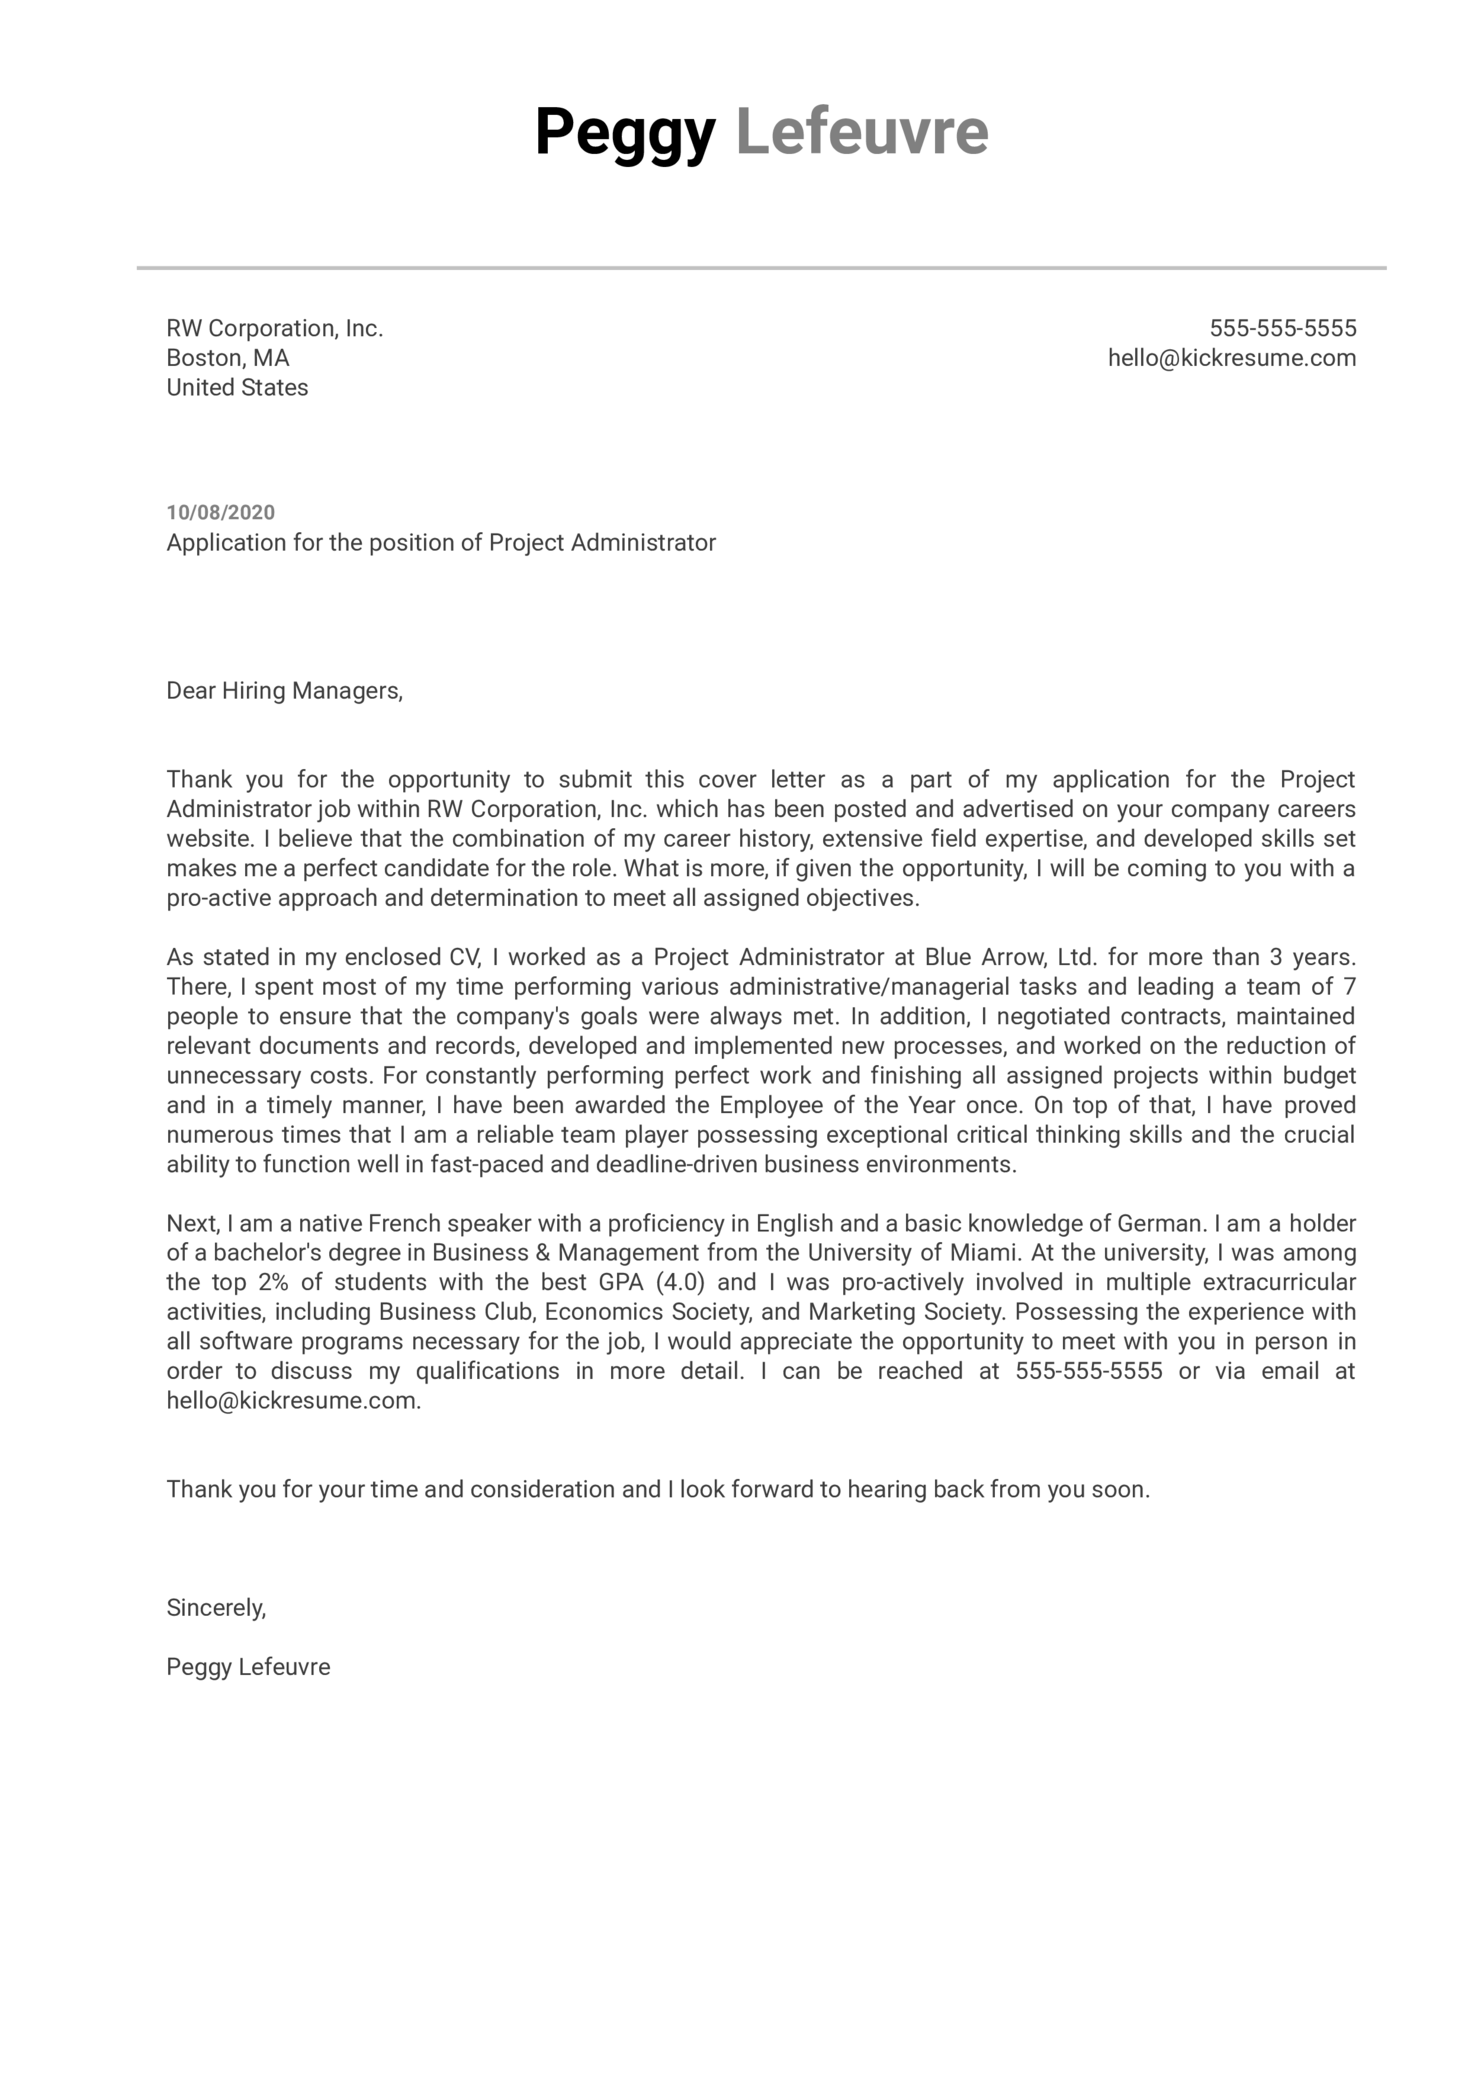 Project Administrator Cover Letter Example